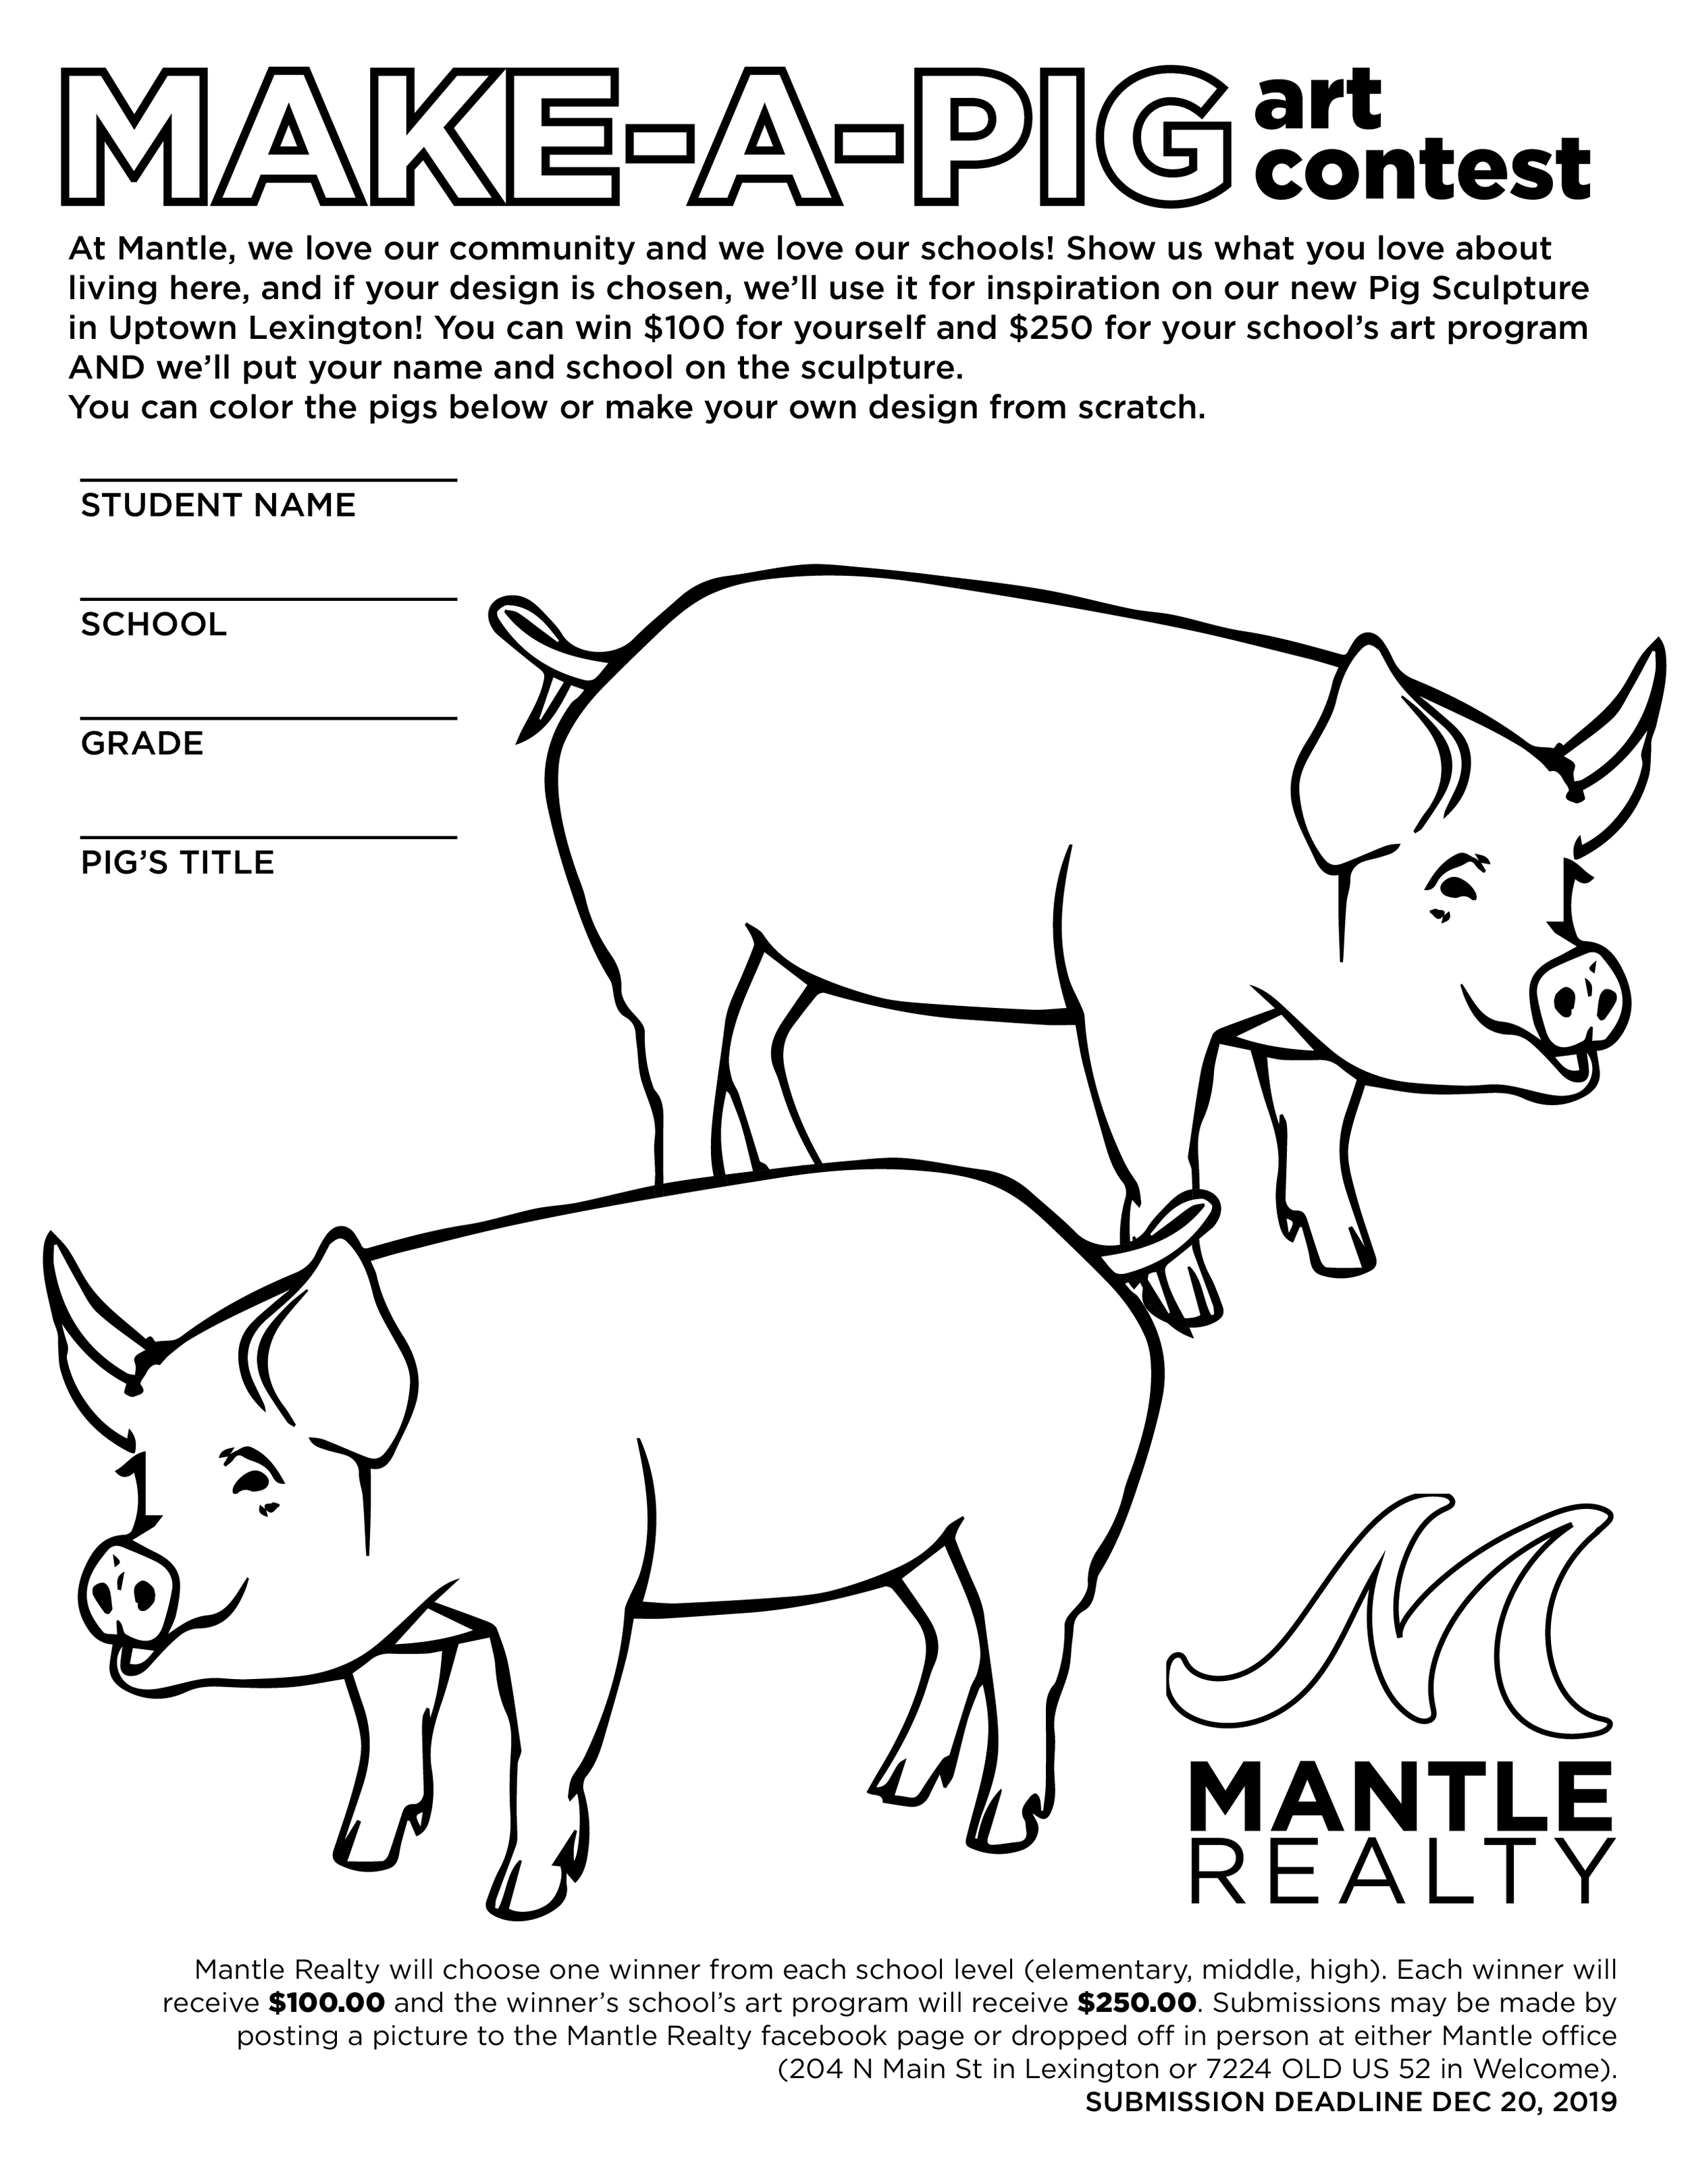 Make+a+Pig+submission 01